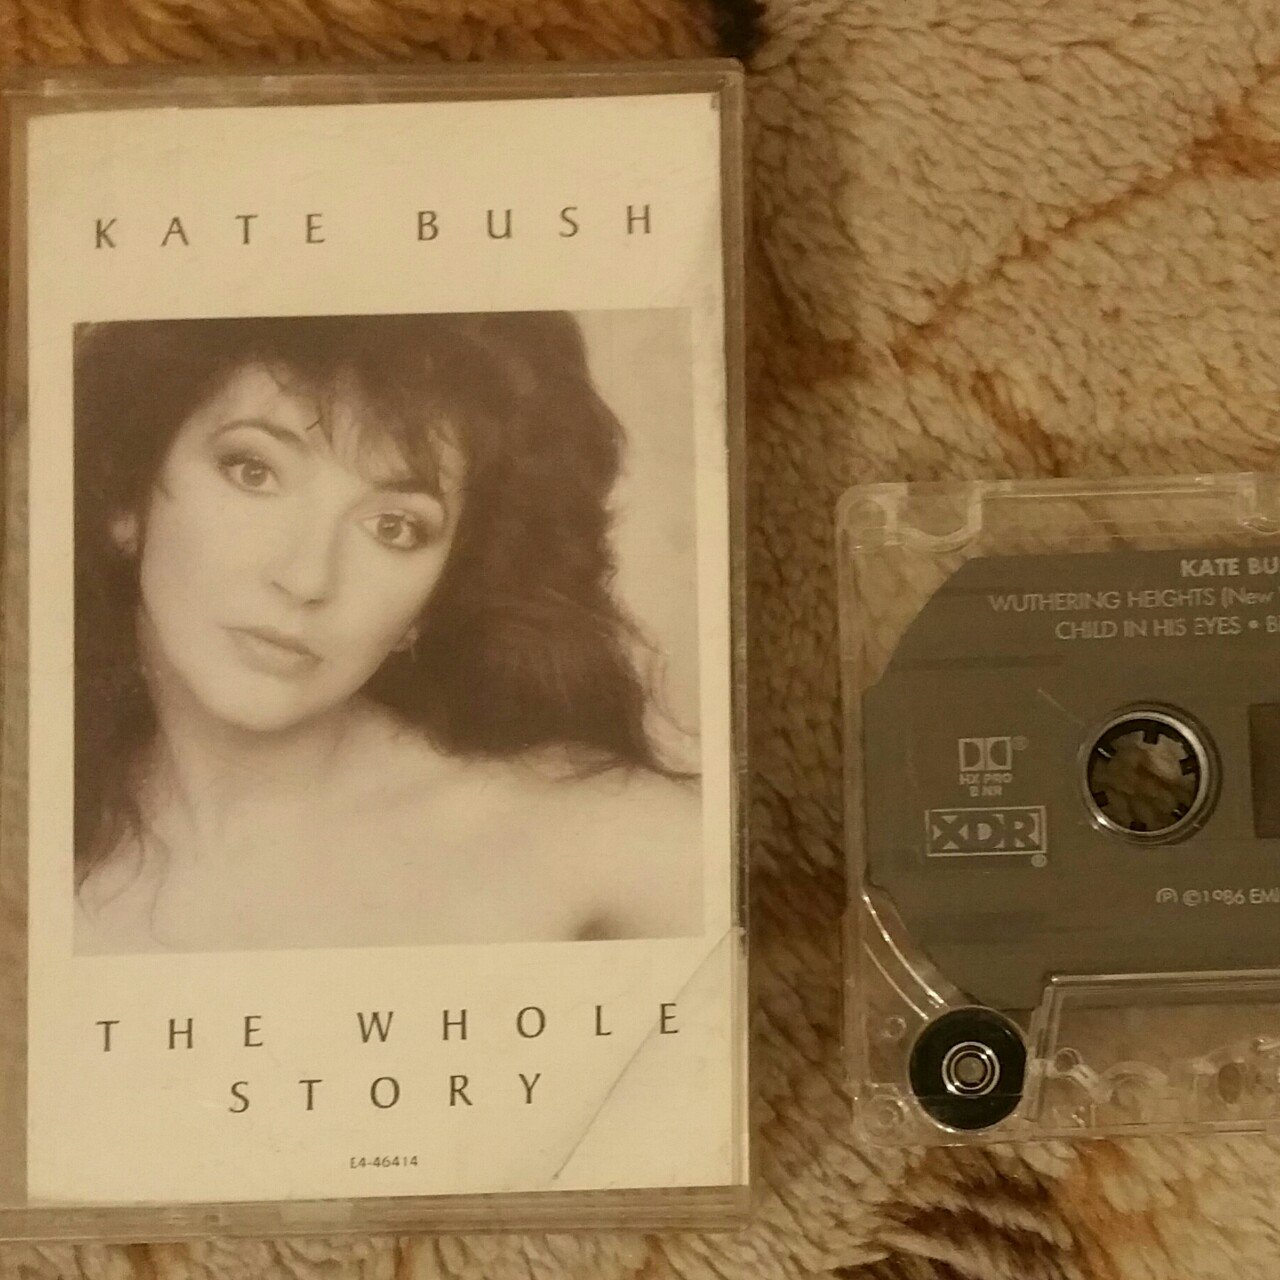 KATE BUSH 'THE WHOLE STORY' cassette  One of my    - Depop